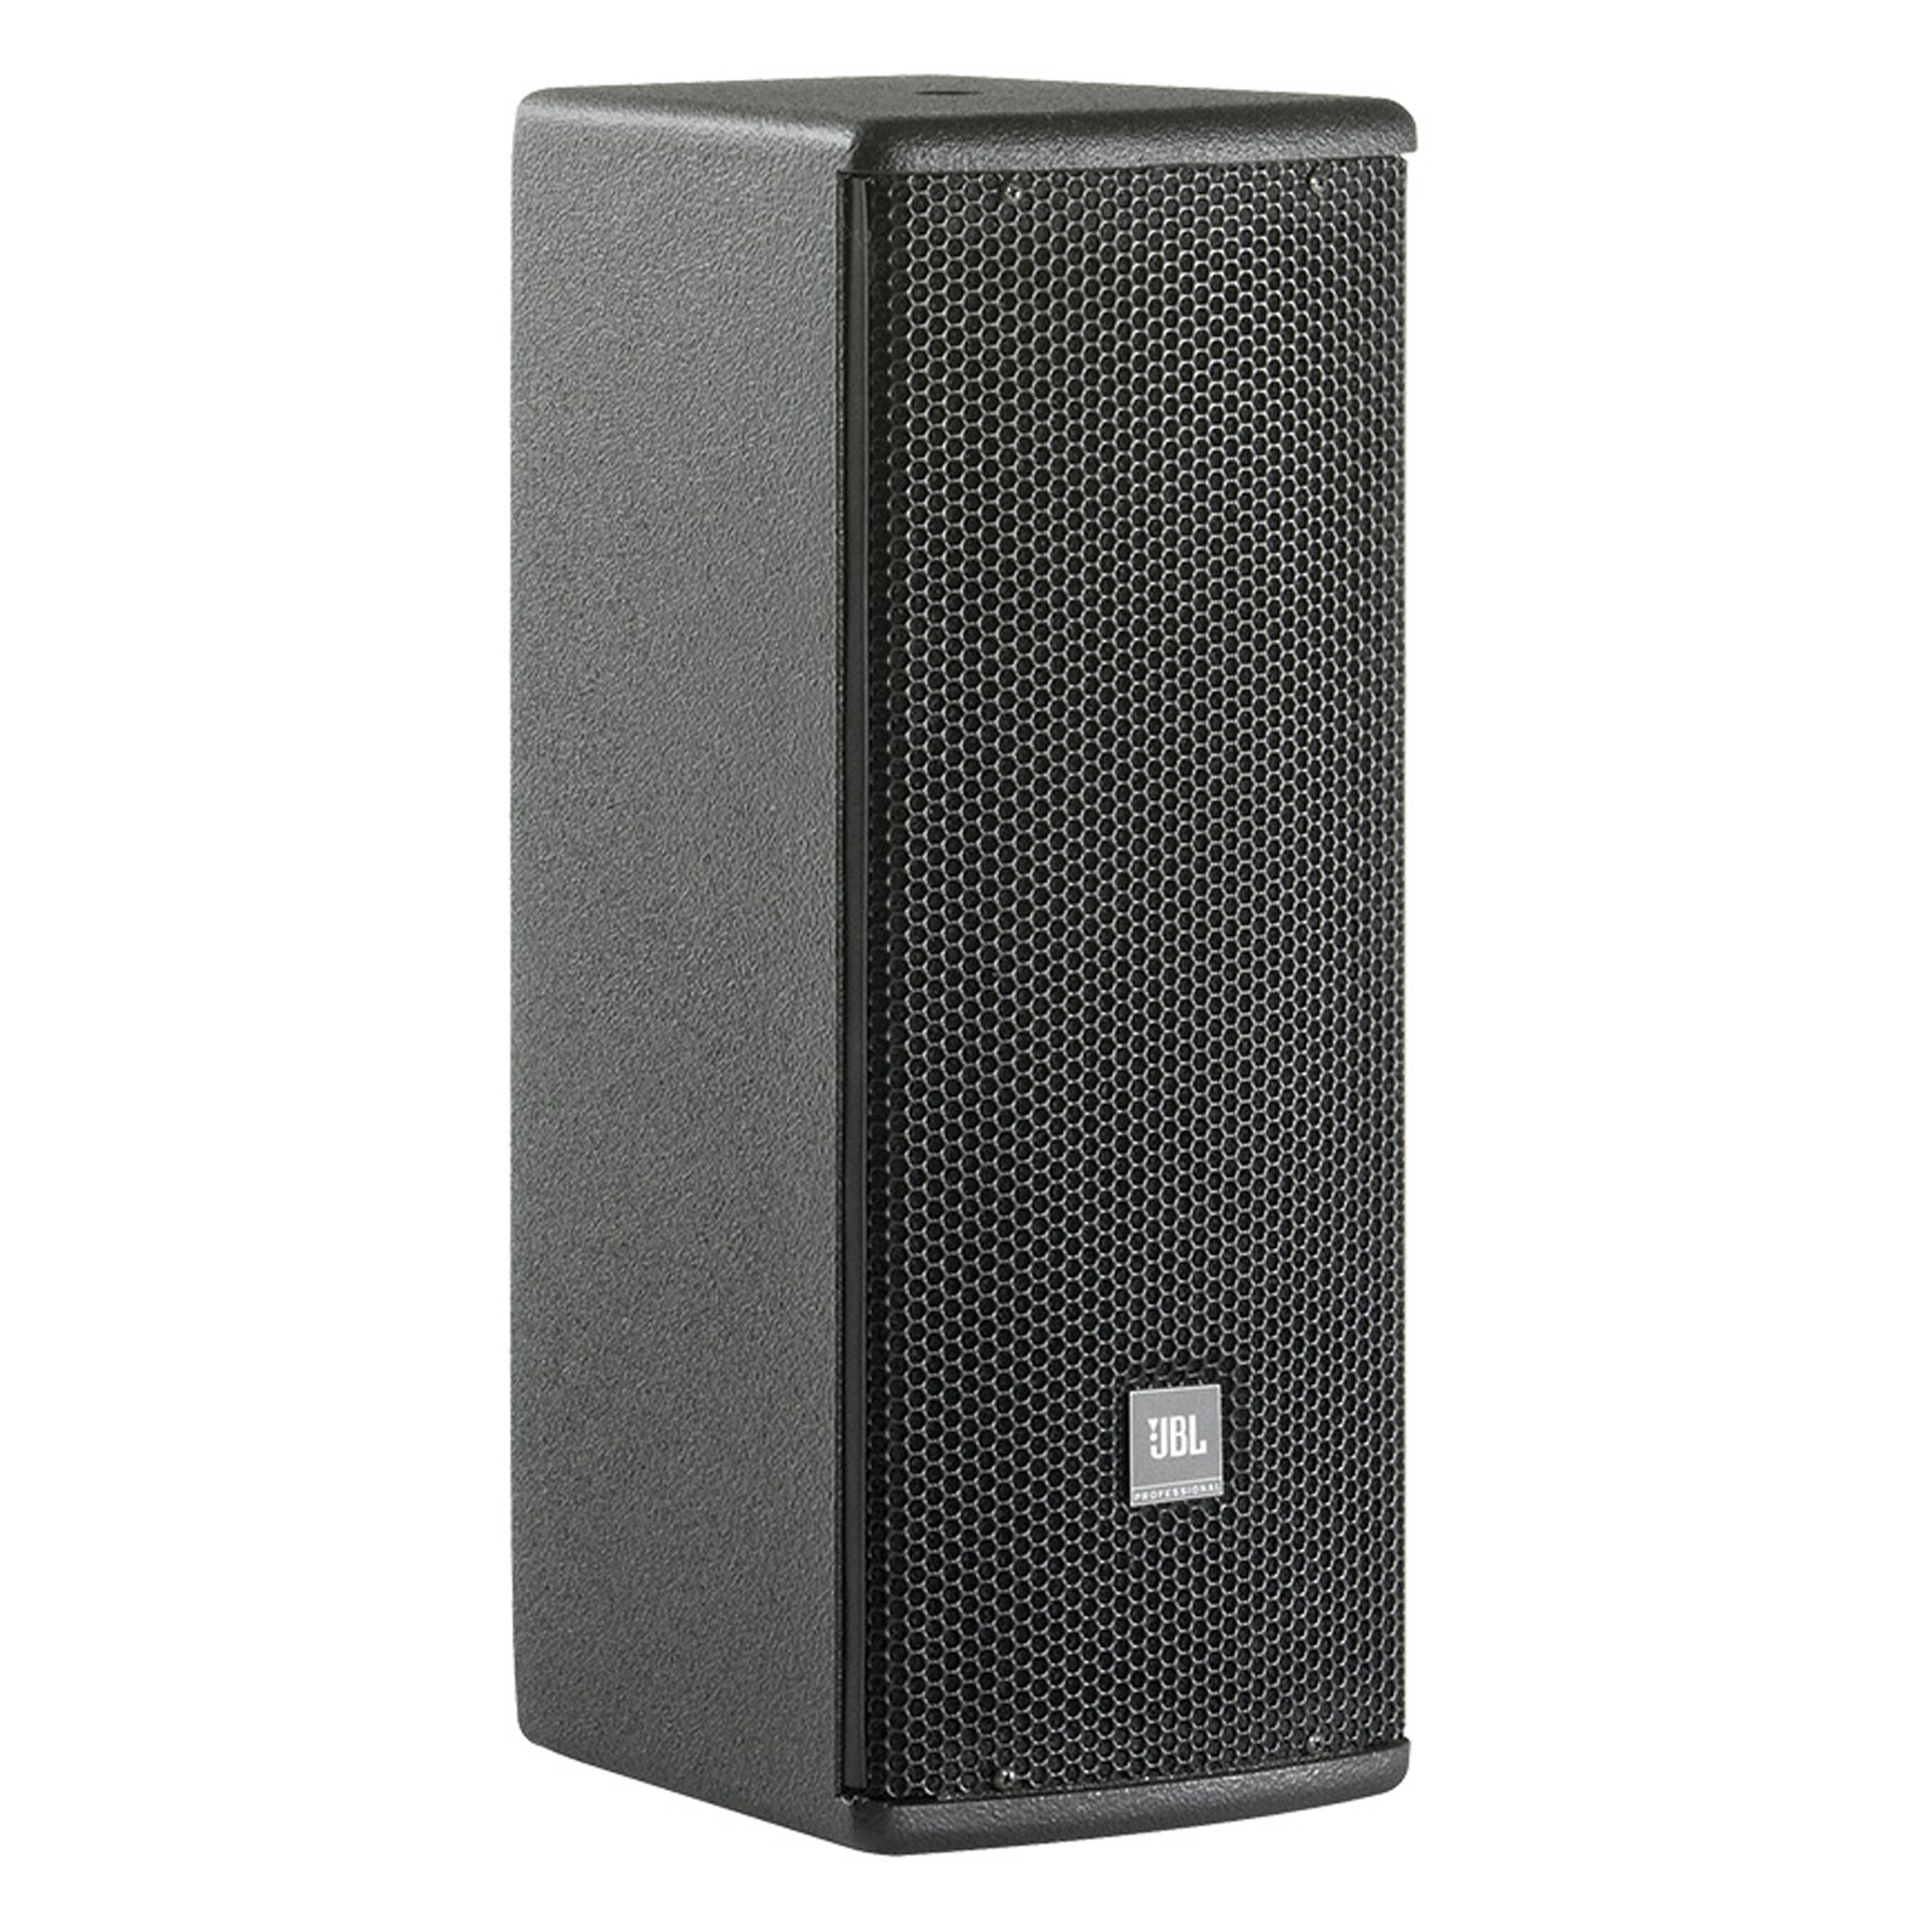 "Ultra Compact 2-way Loudspeaker with 2 x 5.25"" LF"